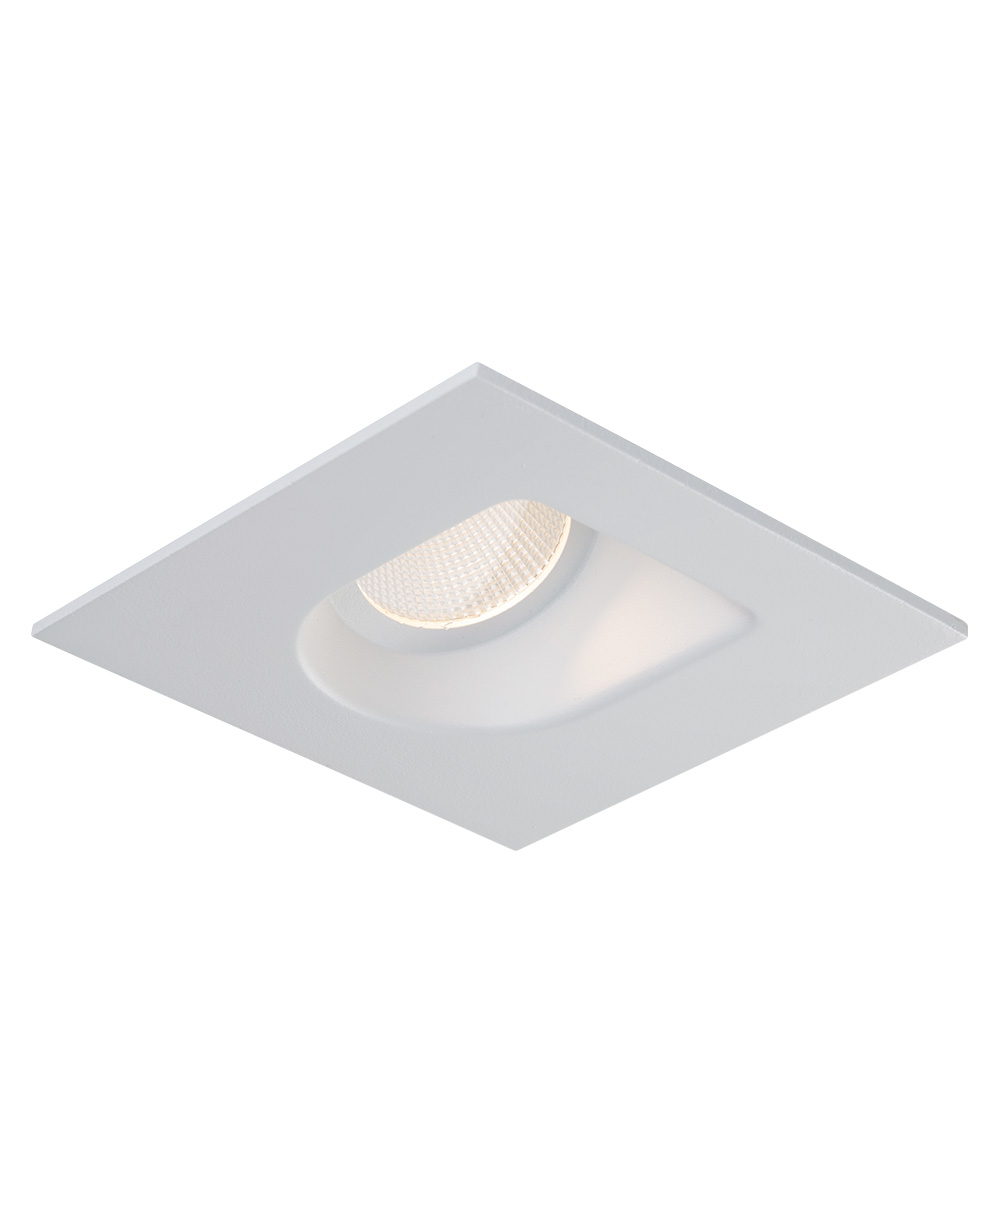 SIGMA 2 Square Slope Ceiling Wall Wash LED Fixture